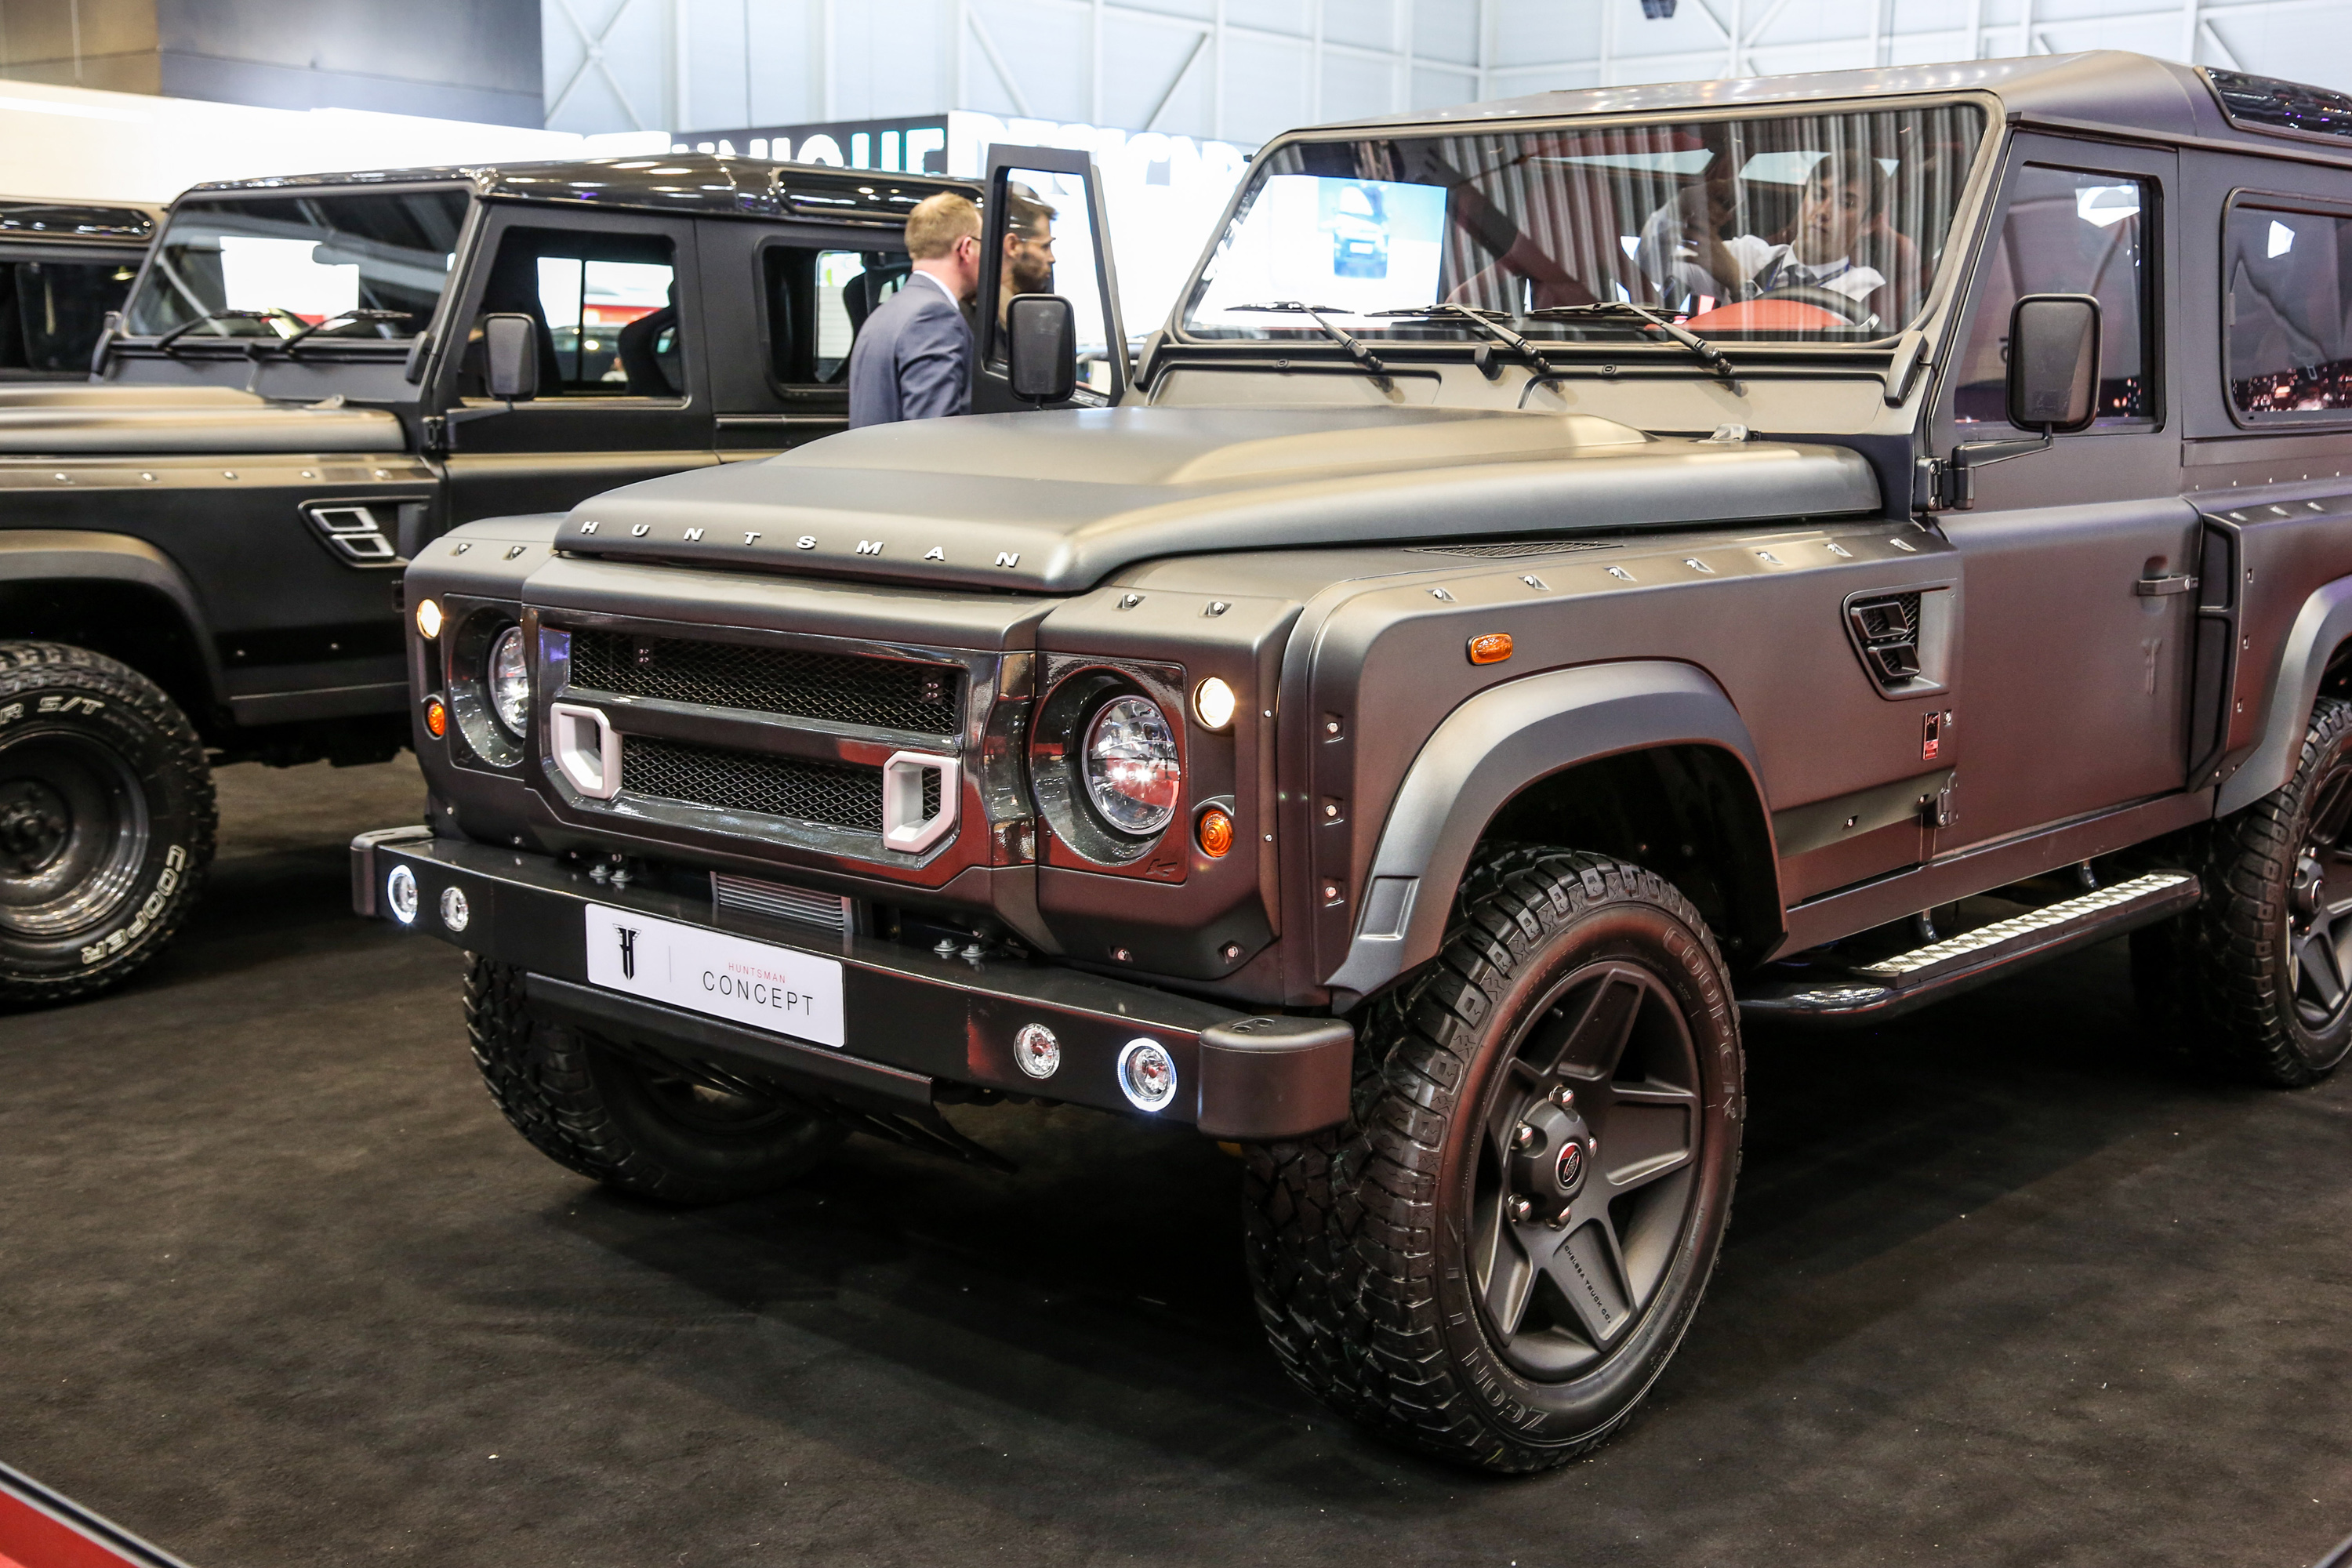 The 6x6 Land Rover Defender is just SO weird looking